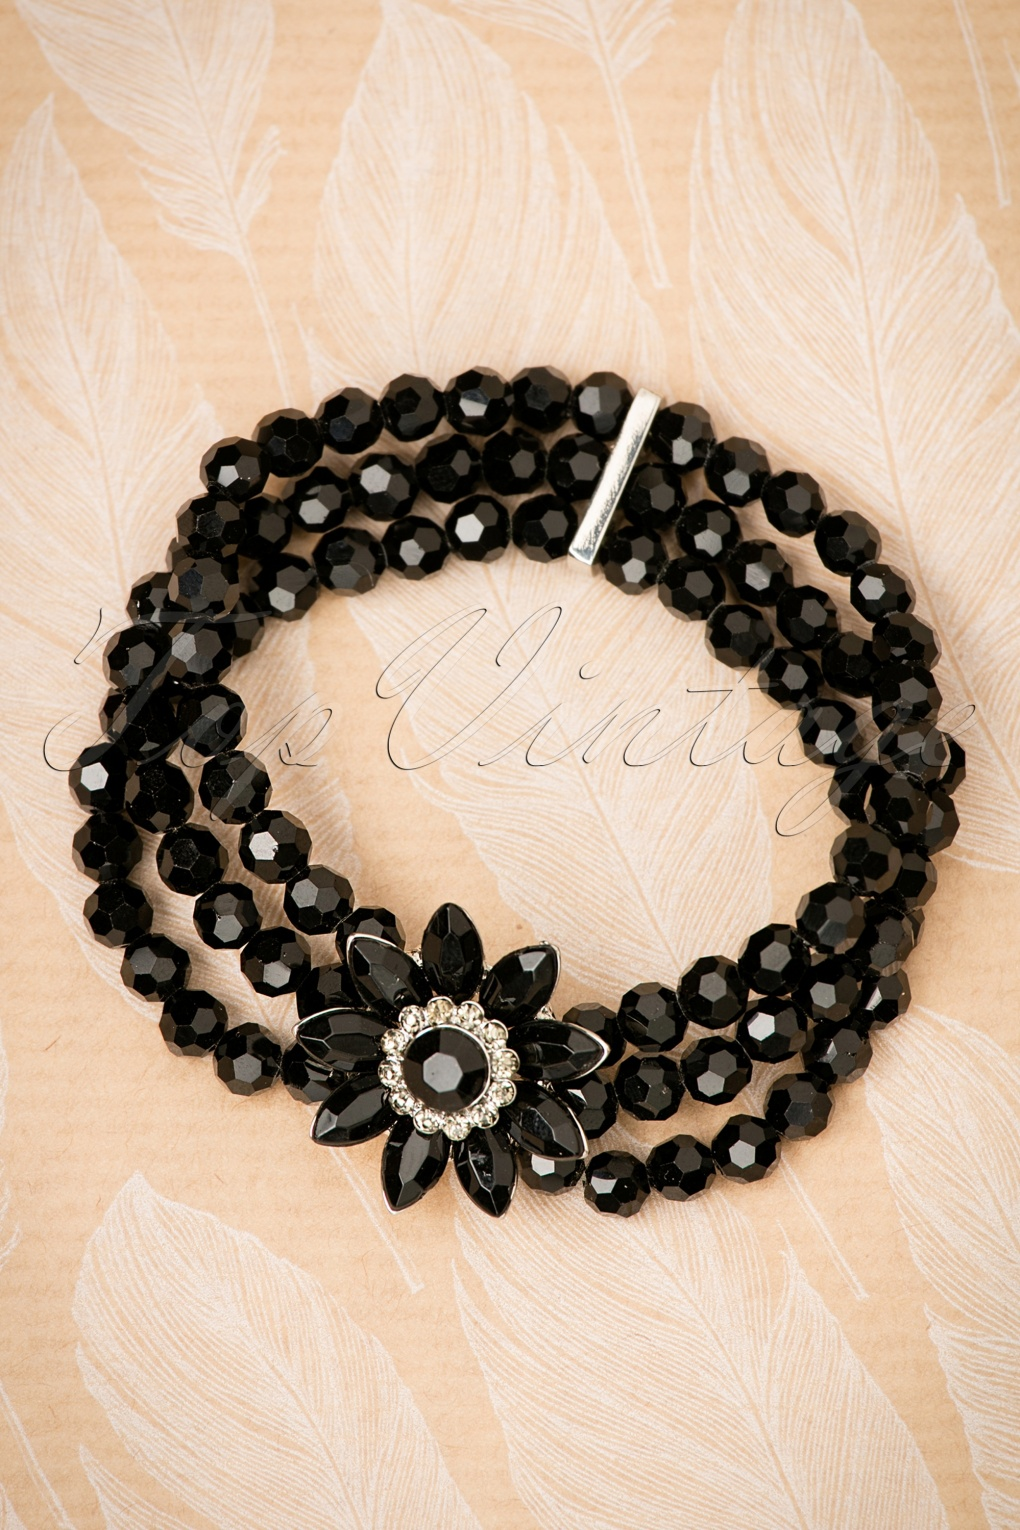 Vintage Style Jewelry, Retro Jewelry 50s Audrey Jet Flower Bracelet in Black £26.28 AT vintagedancer.com